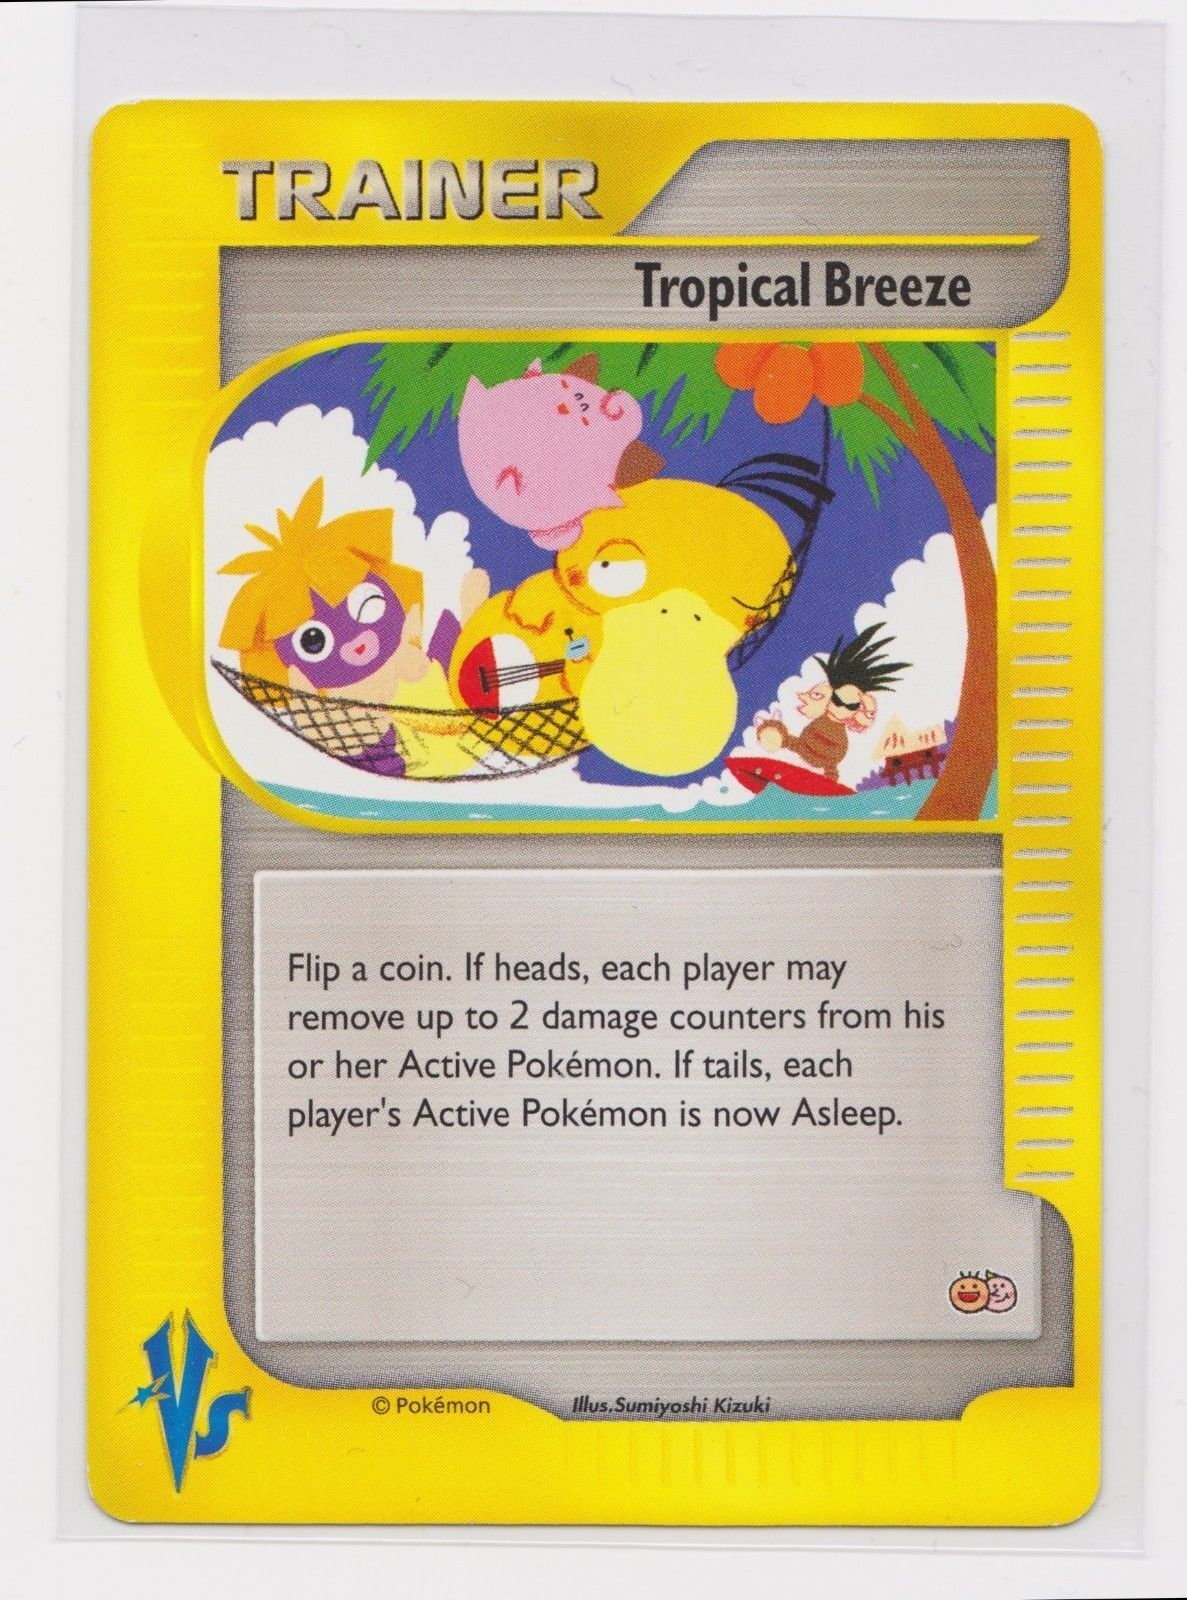 Top 10 Most Expensive Pokemon Cards in the World | eBay